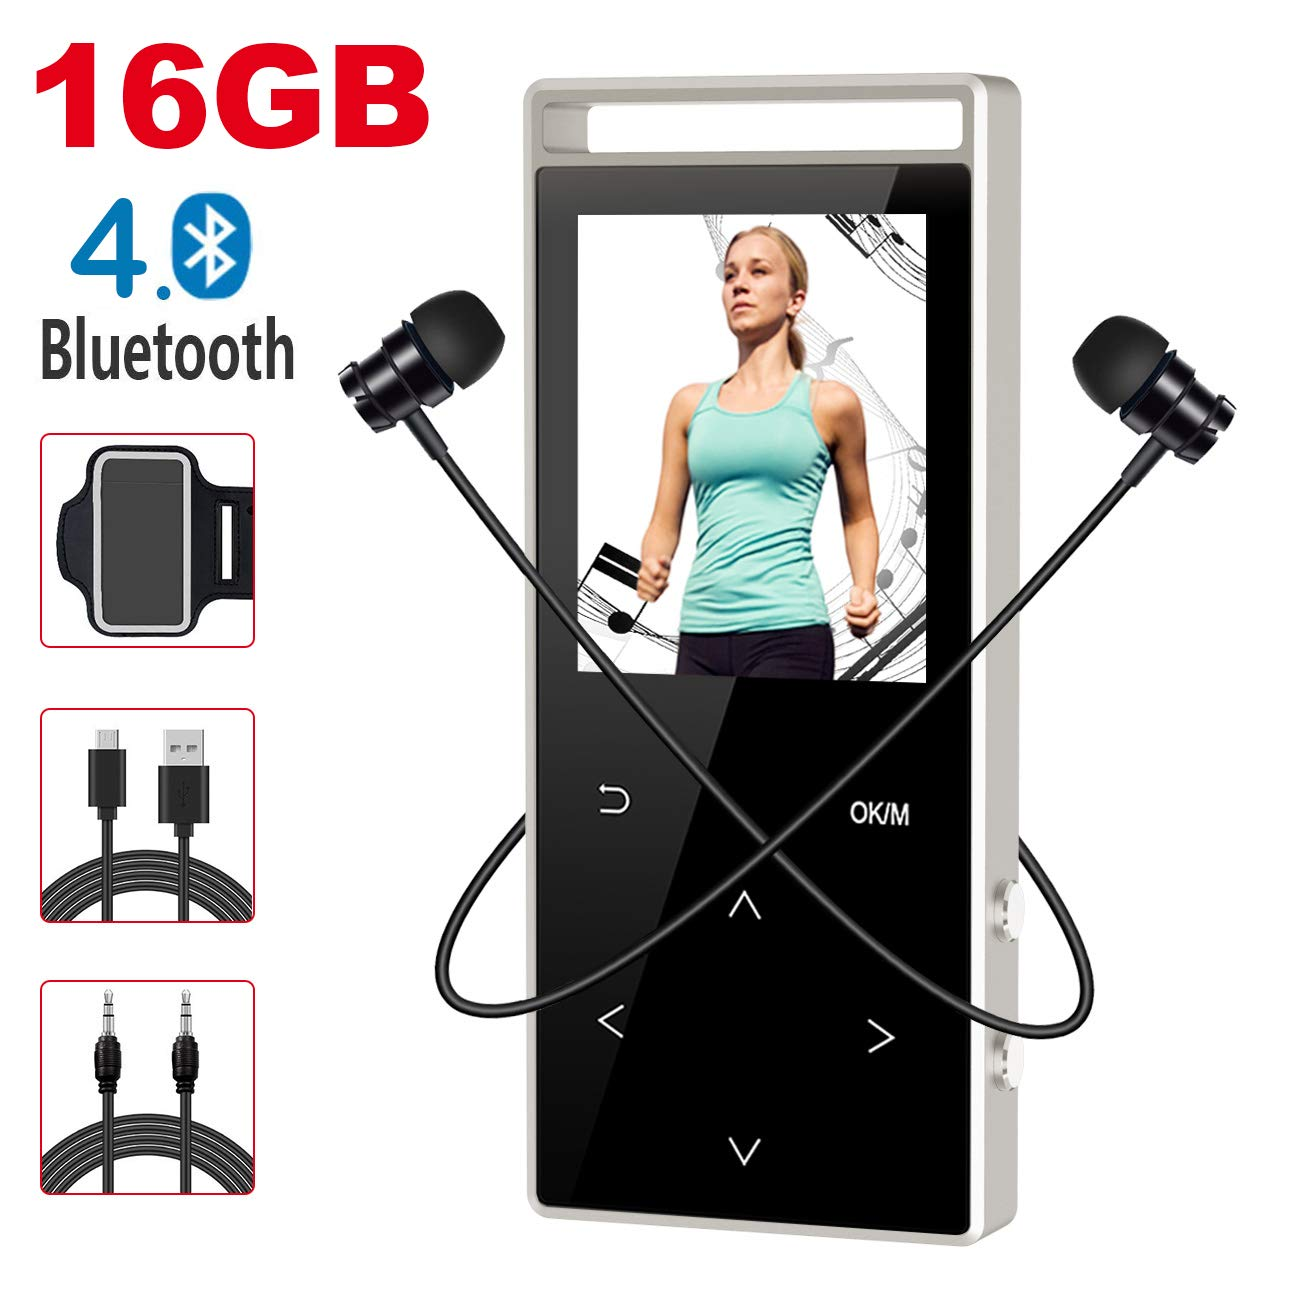 MP3 Player with Bluetooth,Digihero 16GB mp3 Player with FM Radio/Voice Recorder/Pedometer, Lossless Sound,60Hours Playback,HD Sound Quality Earphone, with Earphone Armband for Sport Running